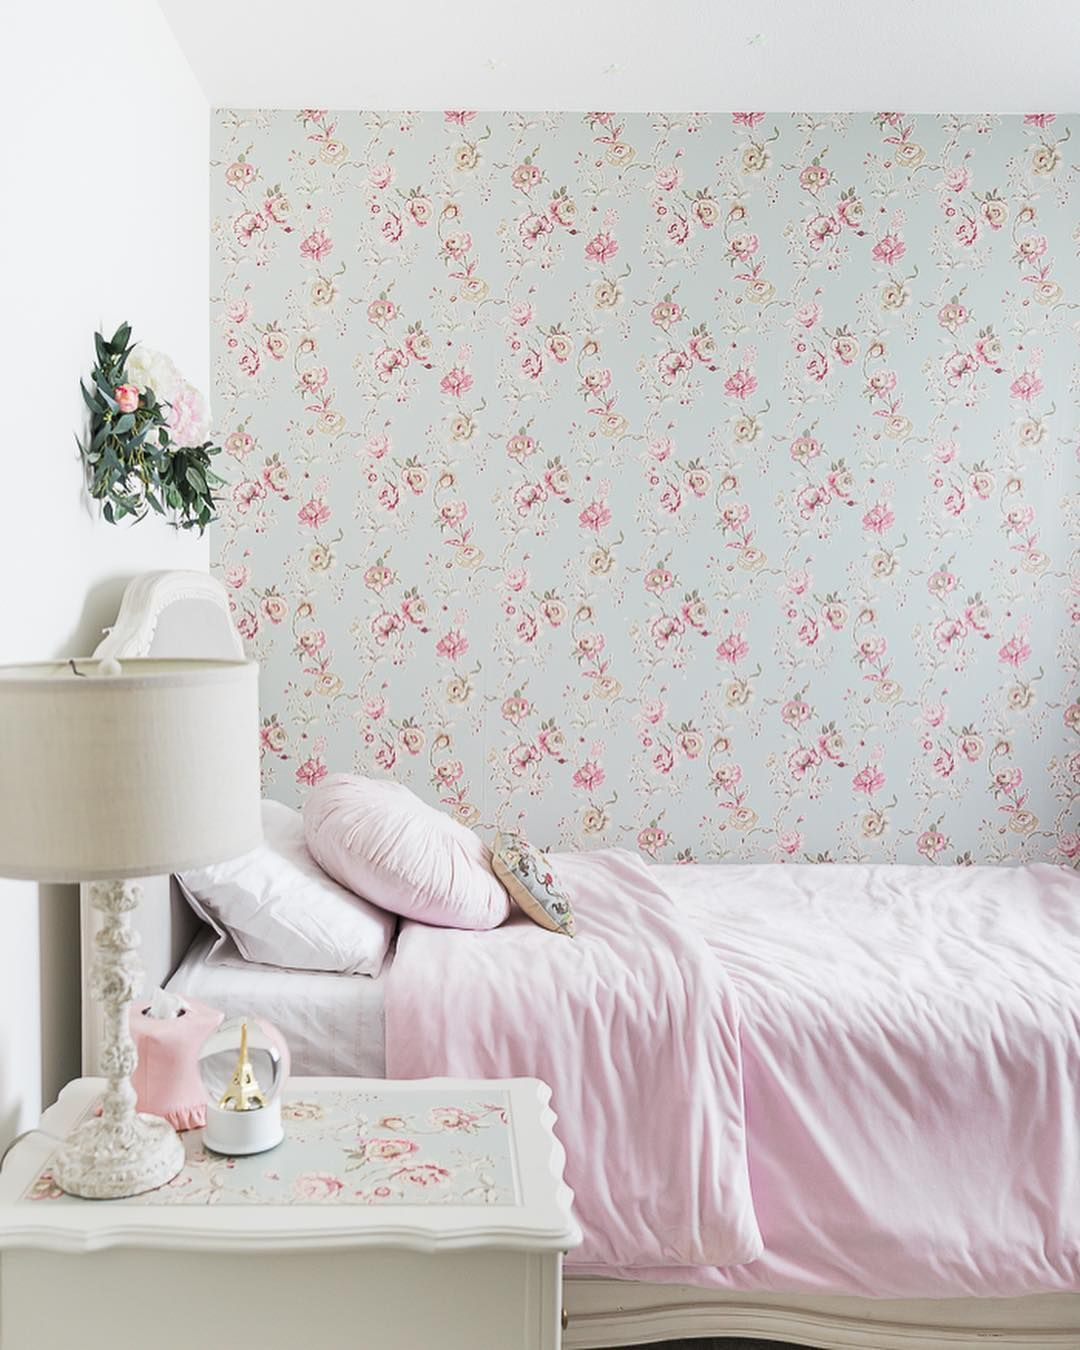 Today I M Sharing How To Hang Wallpaper On One Wall In A Room Also How